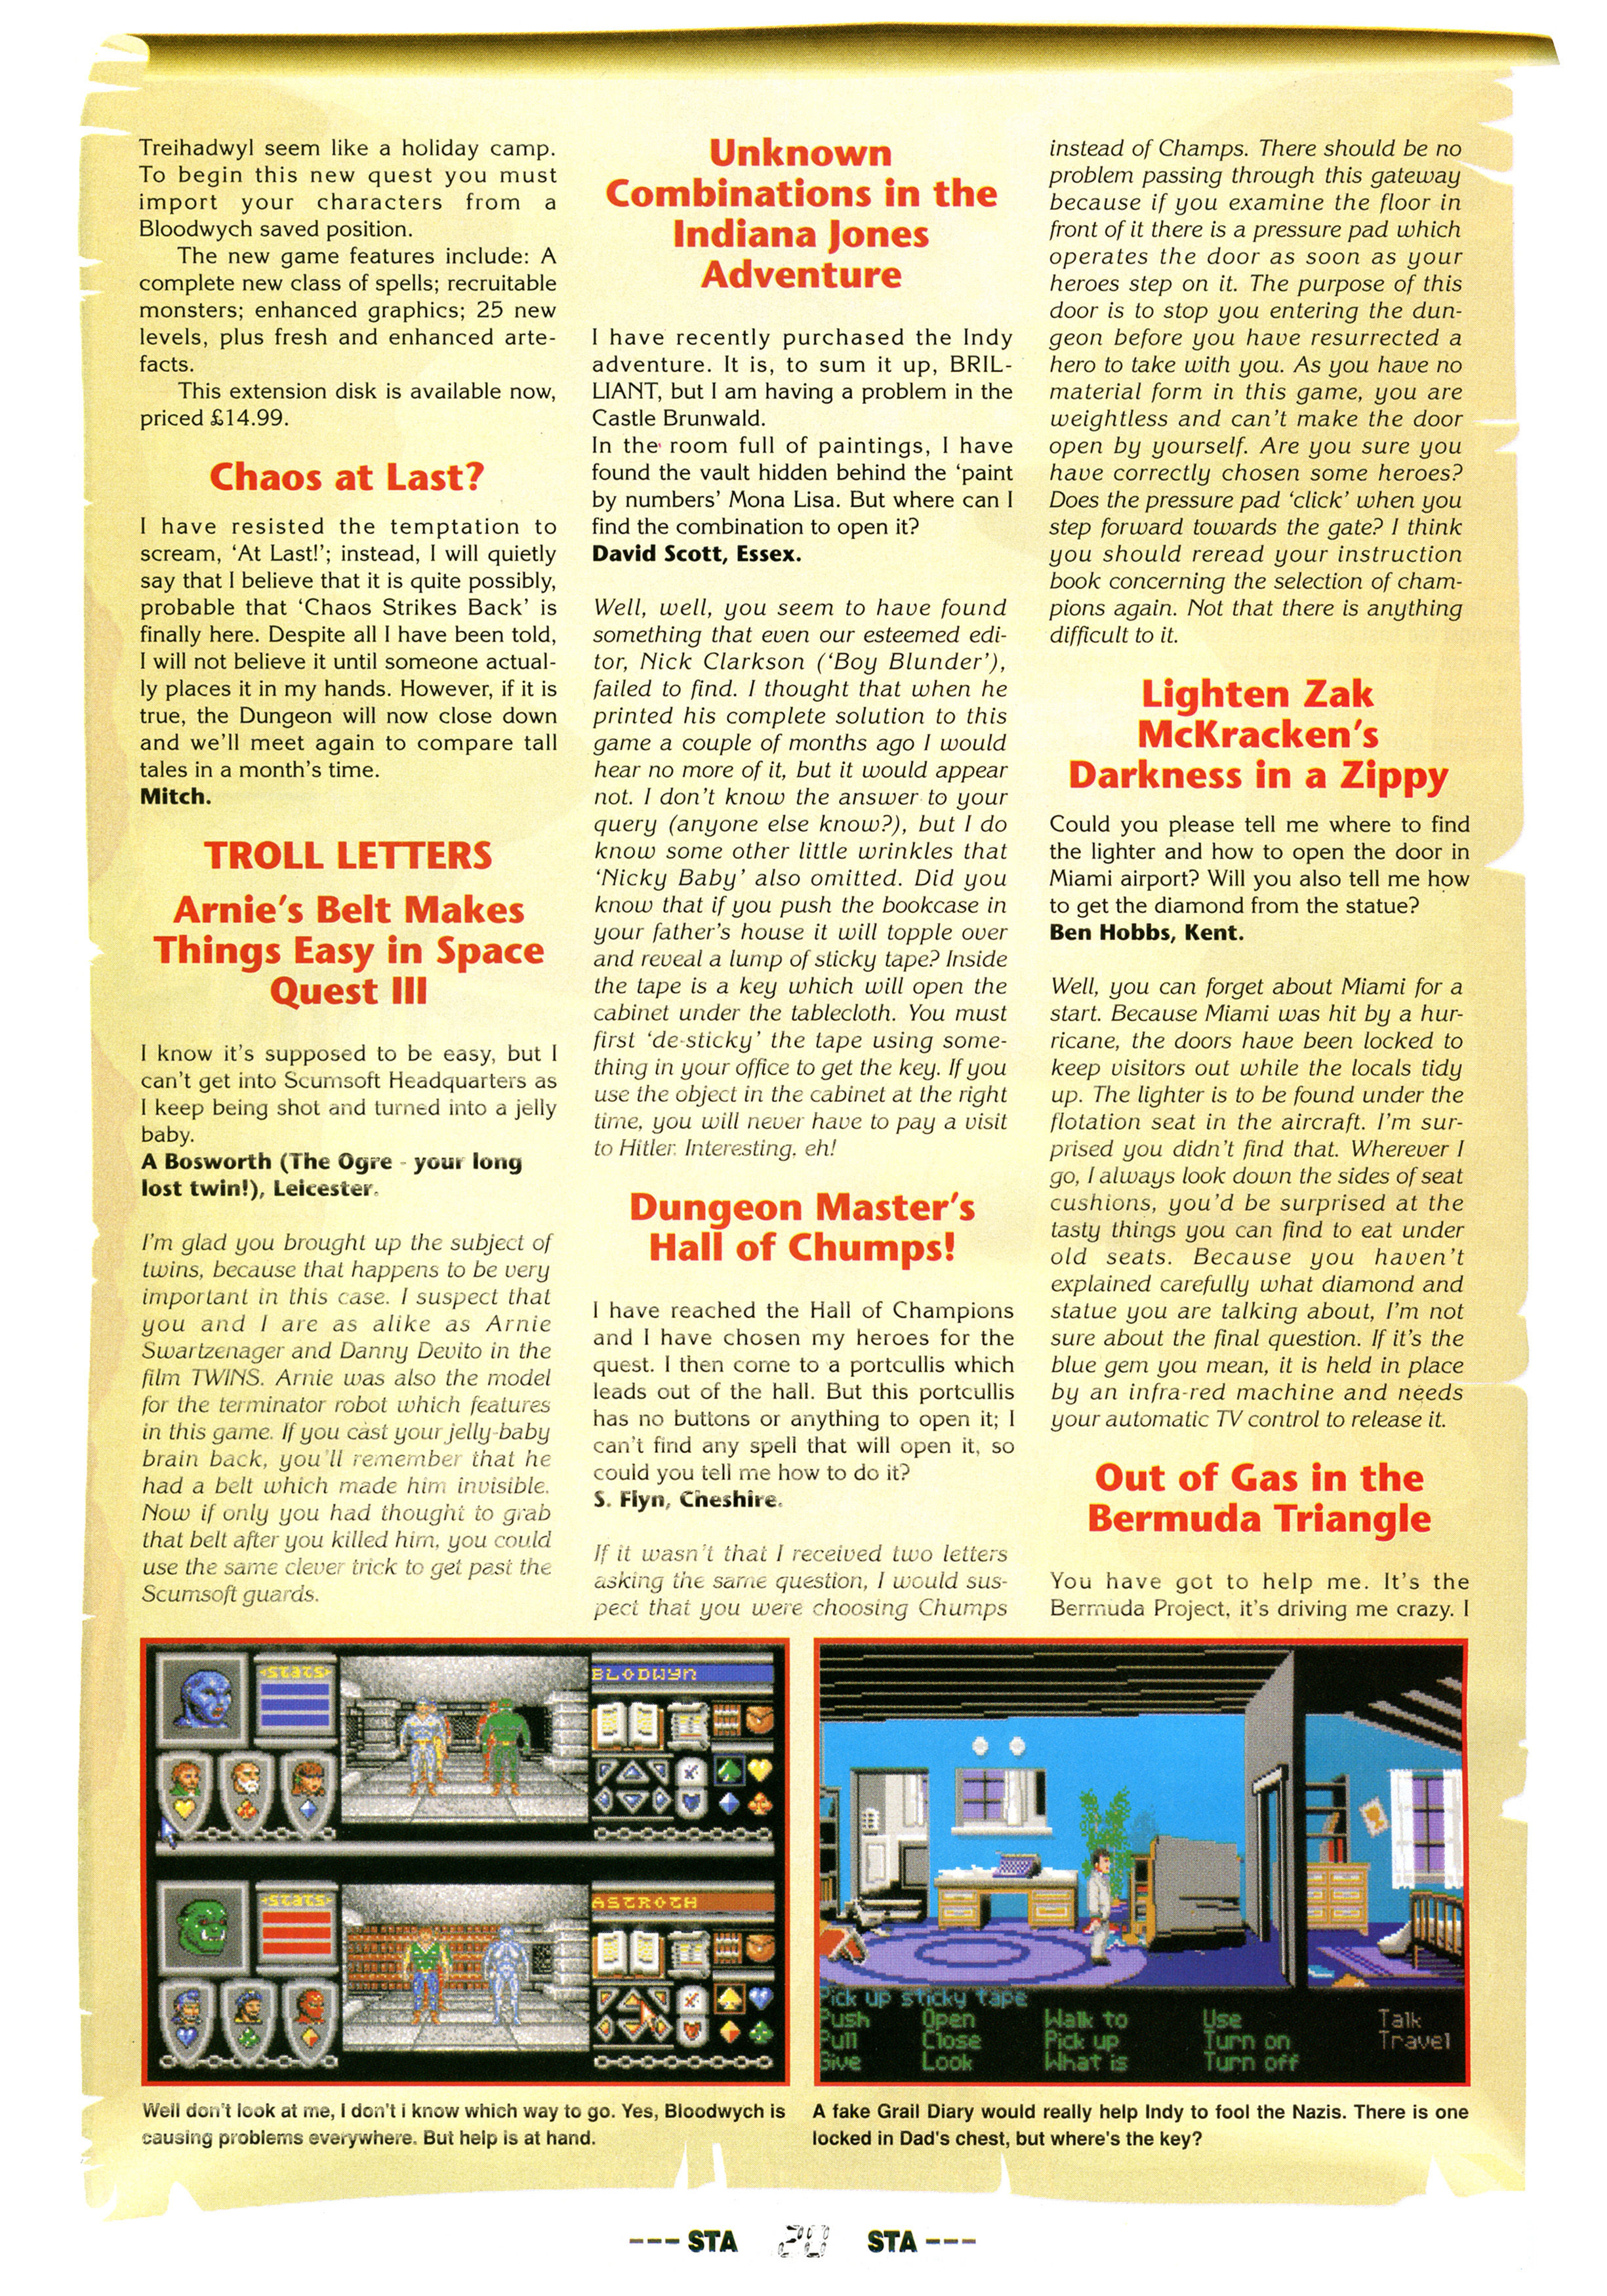 Dungeon Master Hints published in British magazine 'ST Action', Issue #22 February 1990, Page 20